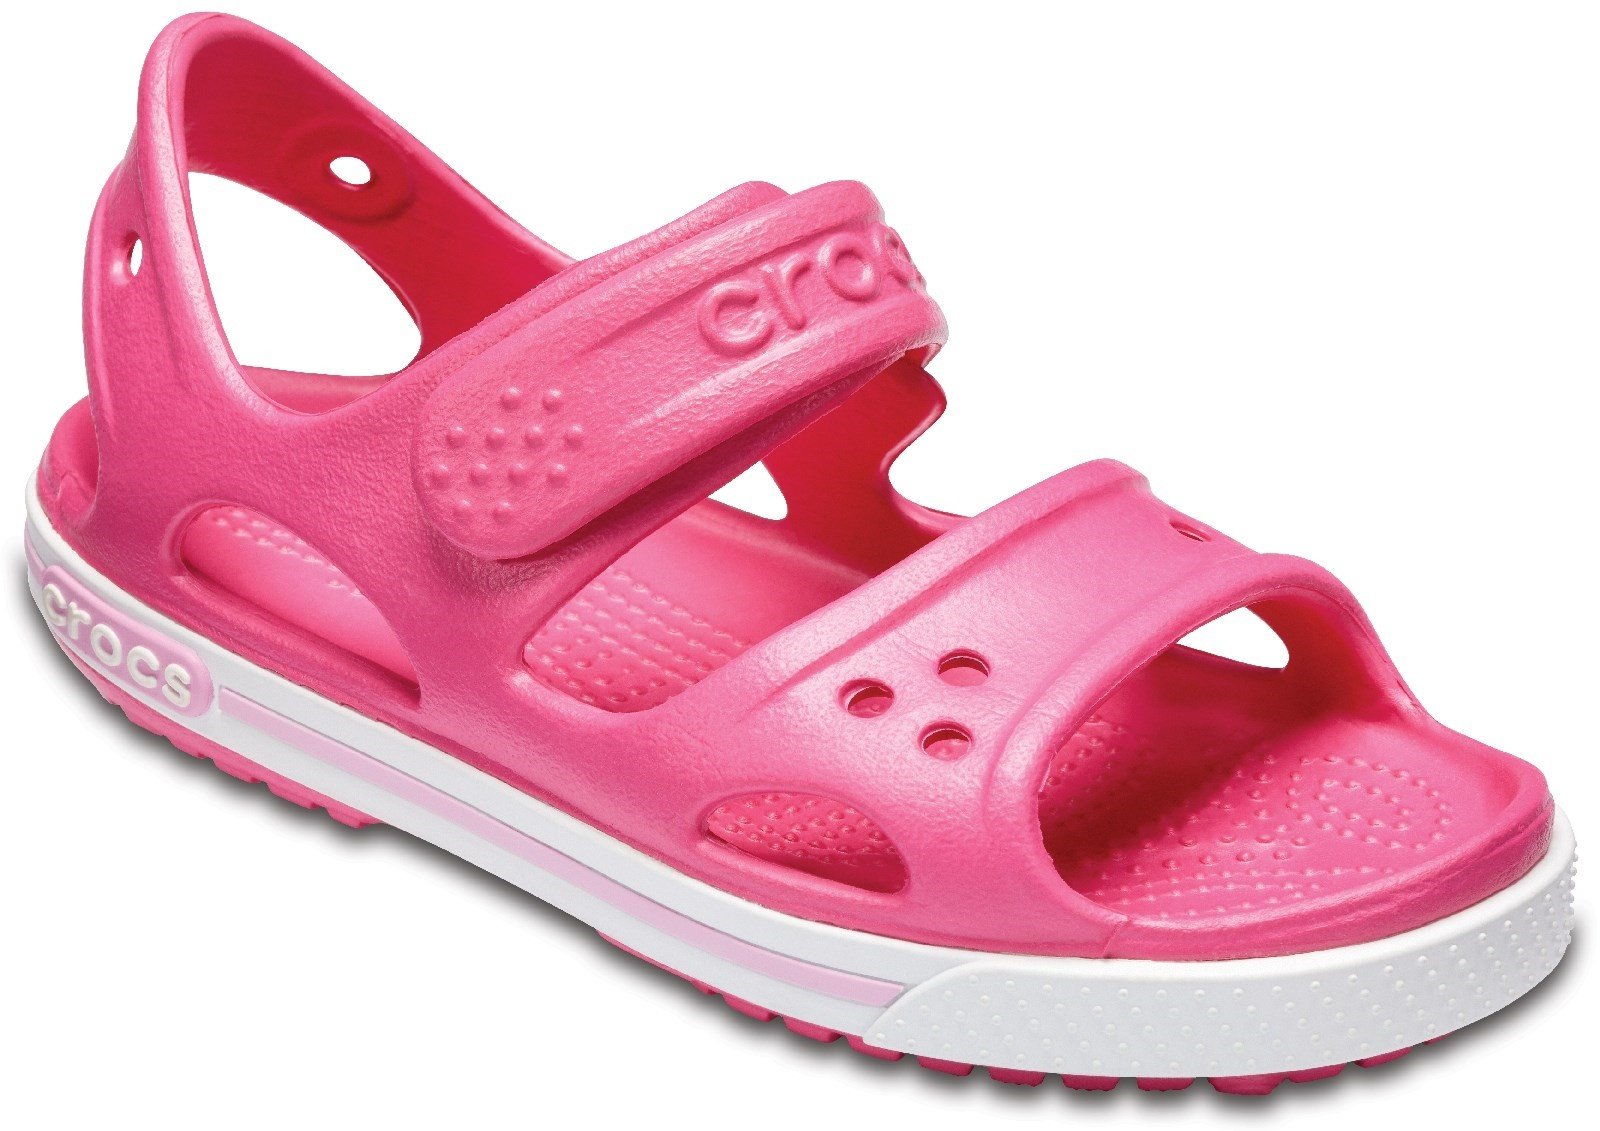 Crocs Kid's Crocband ll Touch Fastening Sandal Various Colours 28788 - Paradise Pink/Carnation 11